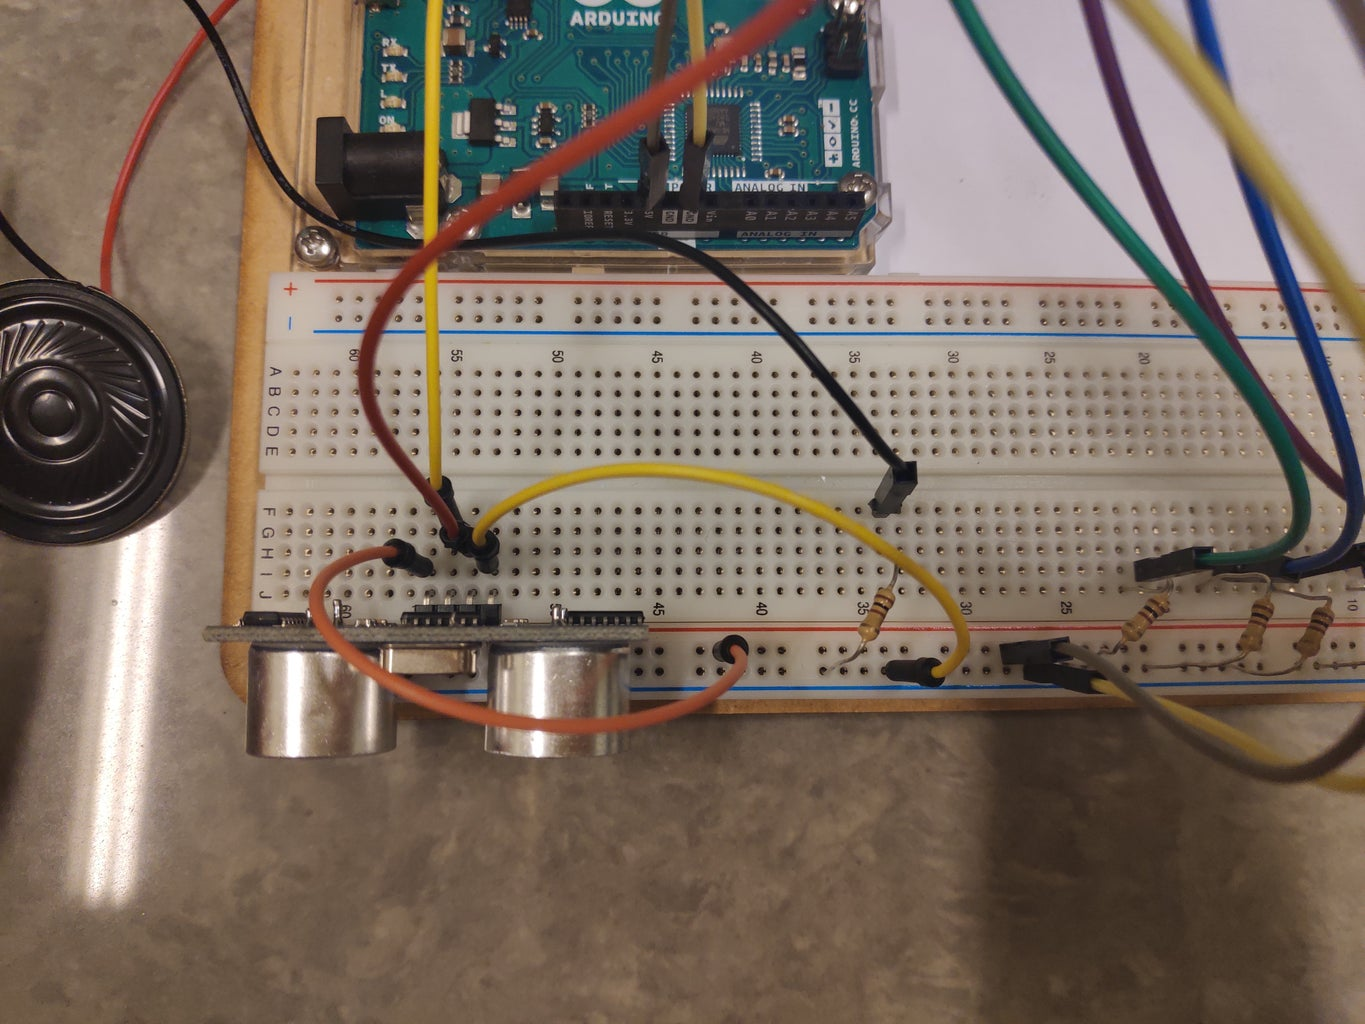 Step 3: Assembly and Component Extension